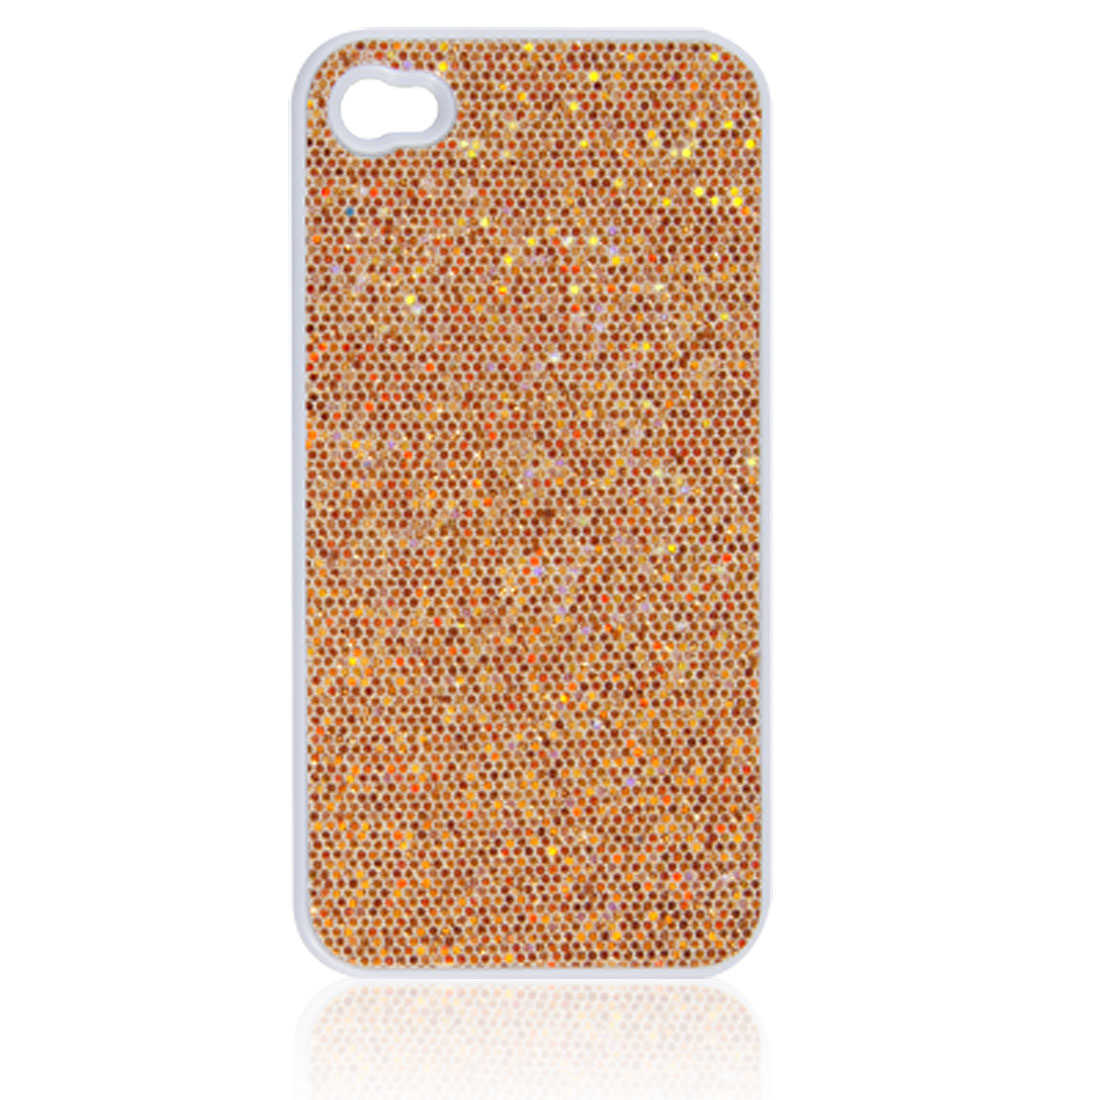 Gold Tone Plastic Sequins Powder Decor Shell Back Case for iPhone 4 4G 4S